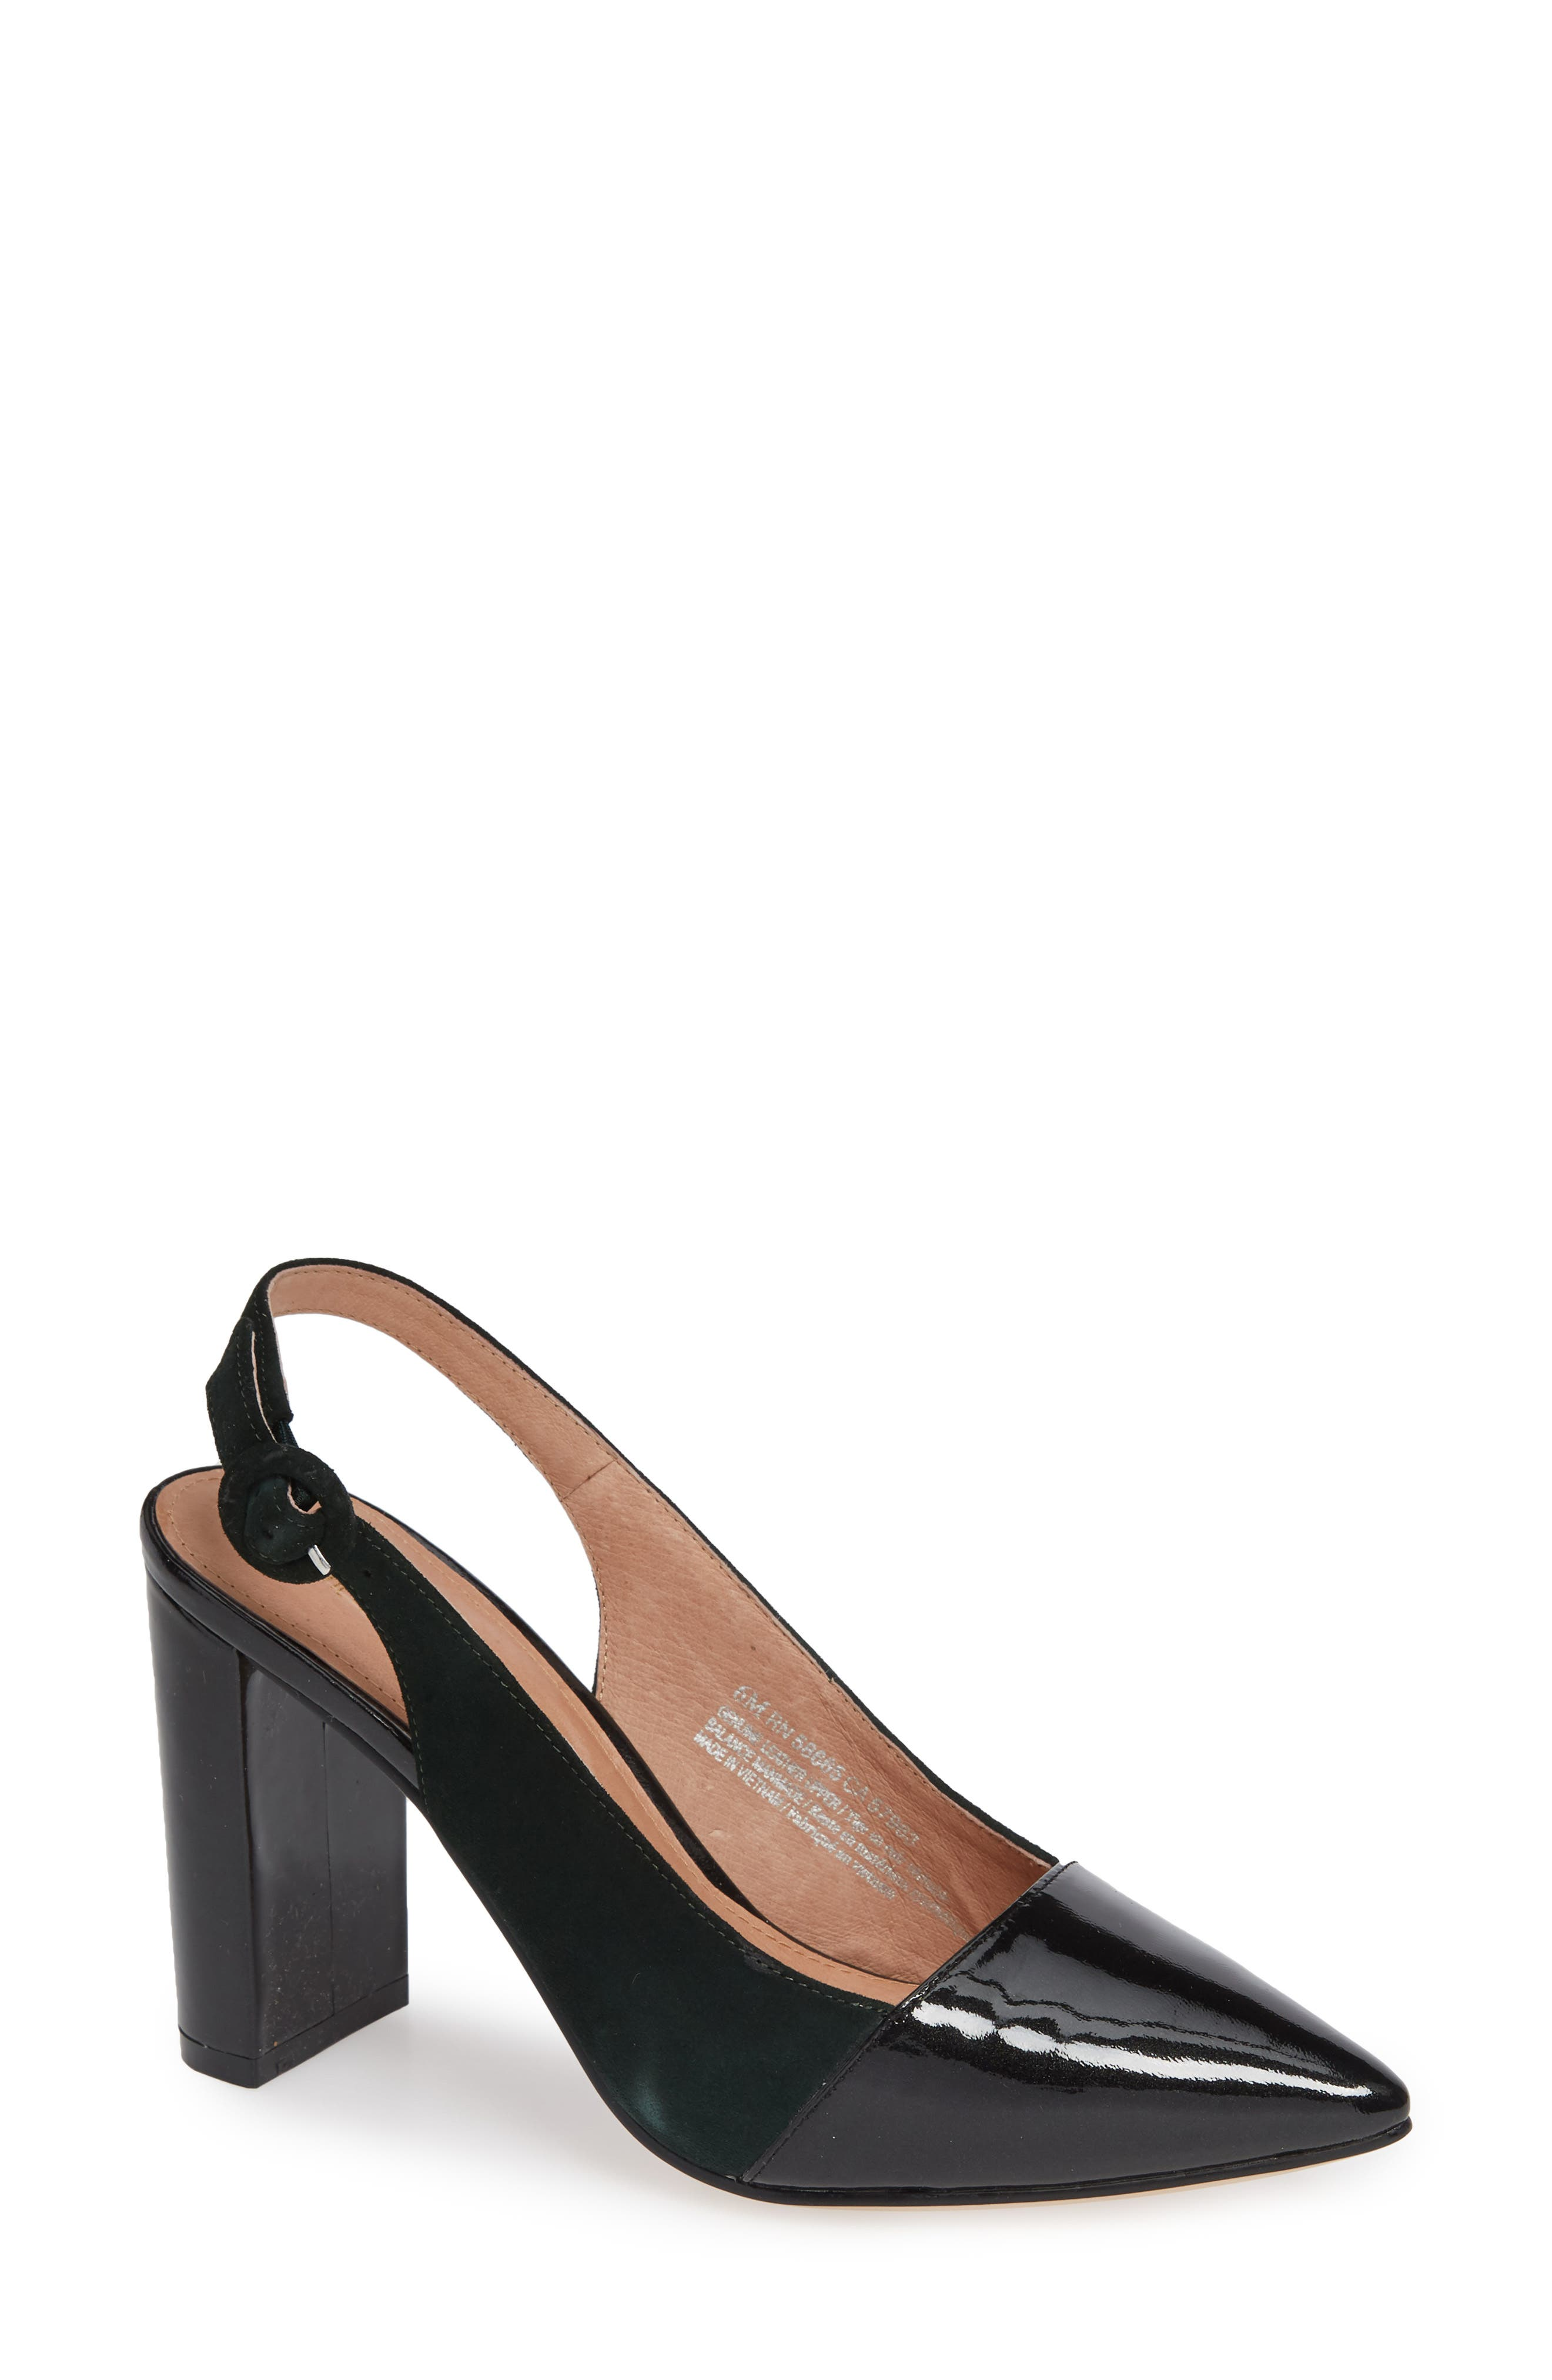 x Atlantic-Pacific The Slingback Pump, Main, color, FOREST GREEN/ BLACK PATENT